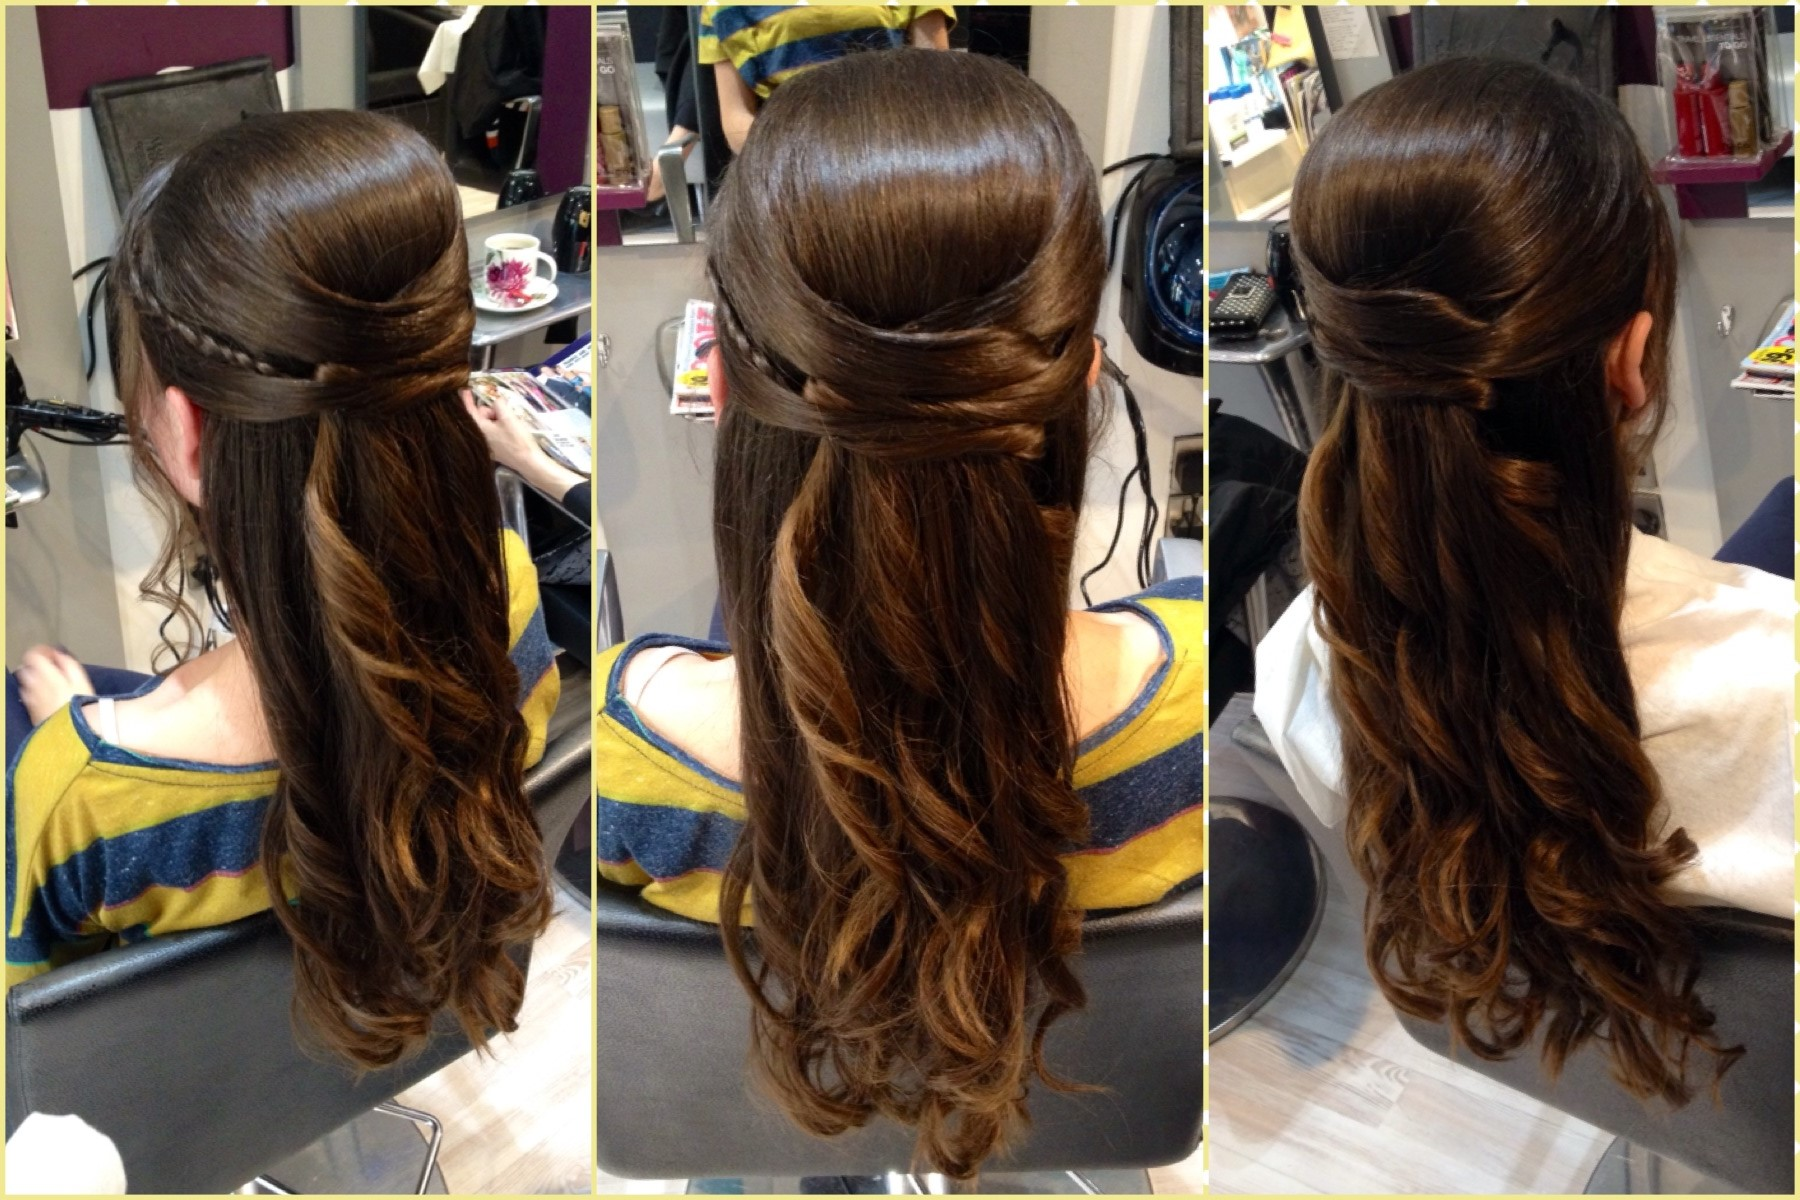 great clips hairstyles ~ hair is our crown